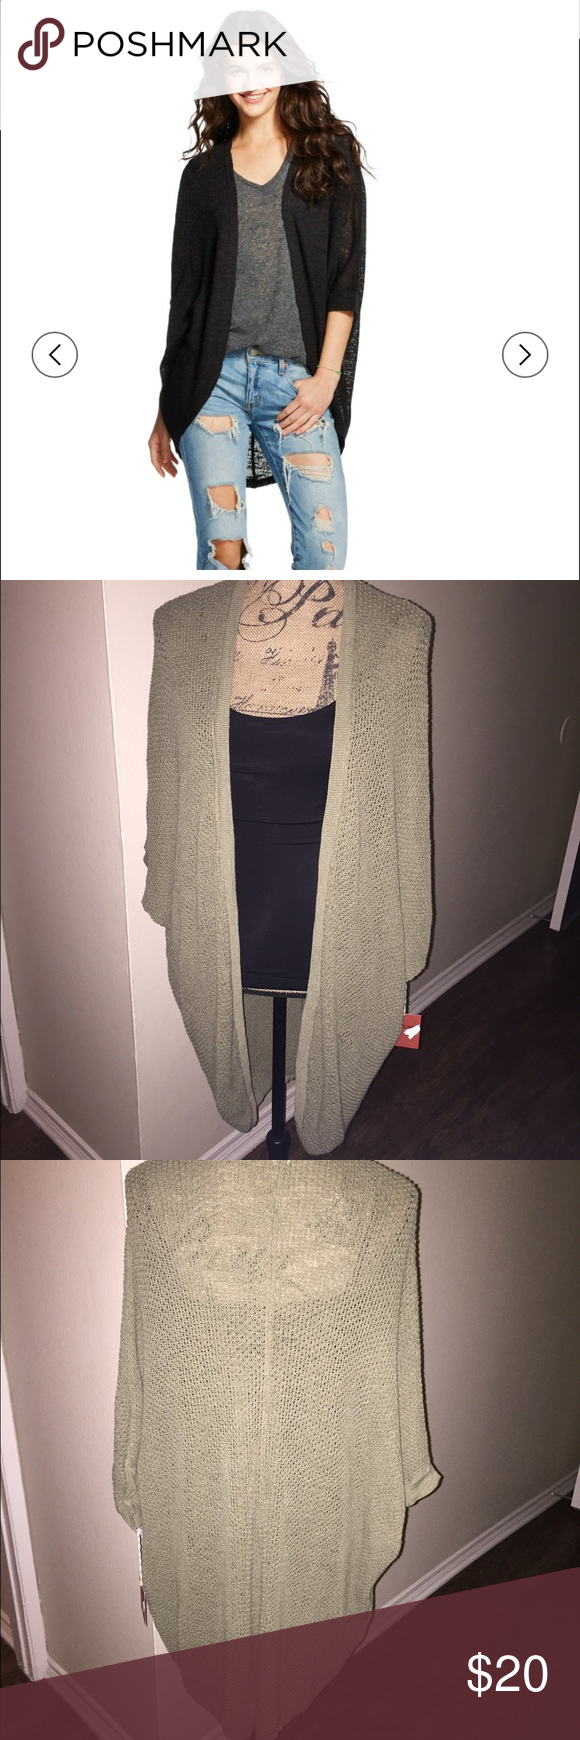 Oversized open cardigan Short sleeve oversized open cardigan. Perfect to dress up or down. Can be worn to the office on causal Friday, or for night out with the girls. Mossimo Supply Co Sweaters Cardigans